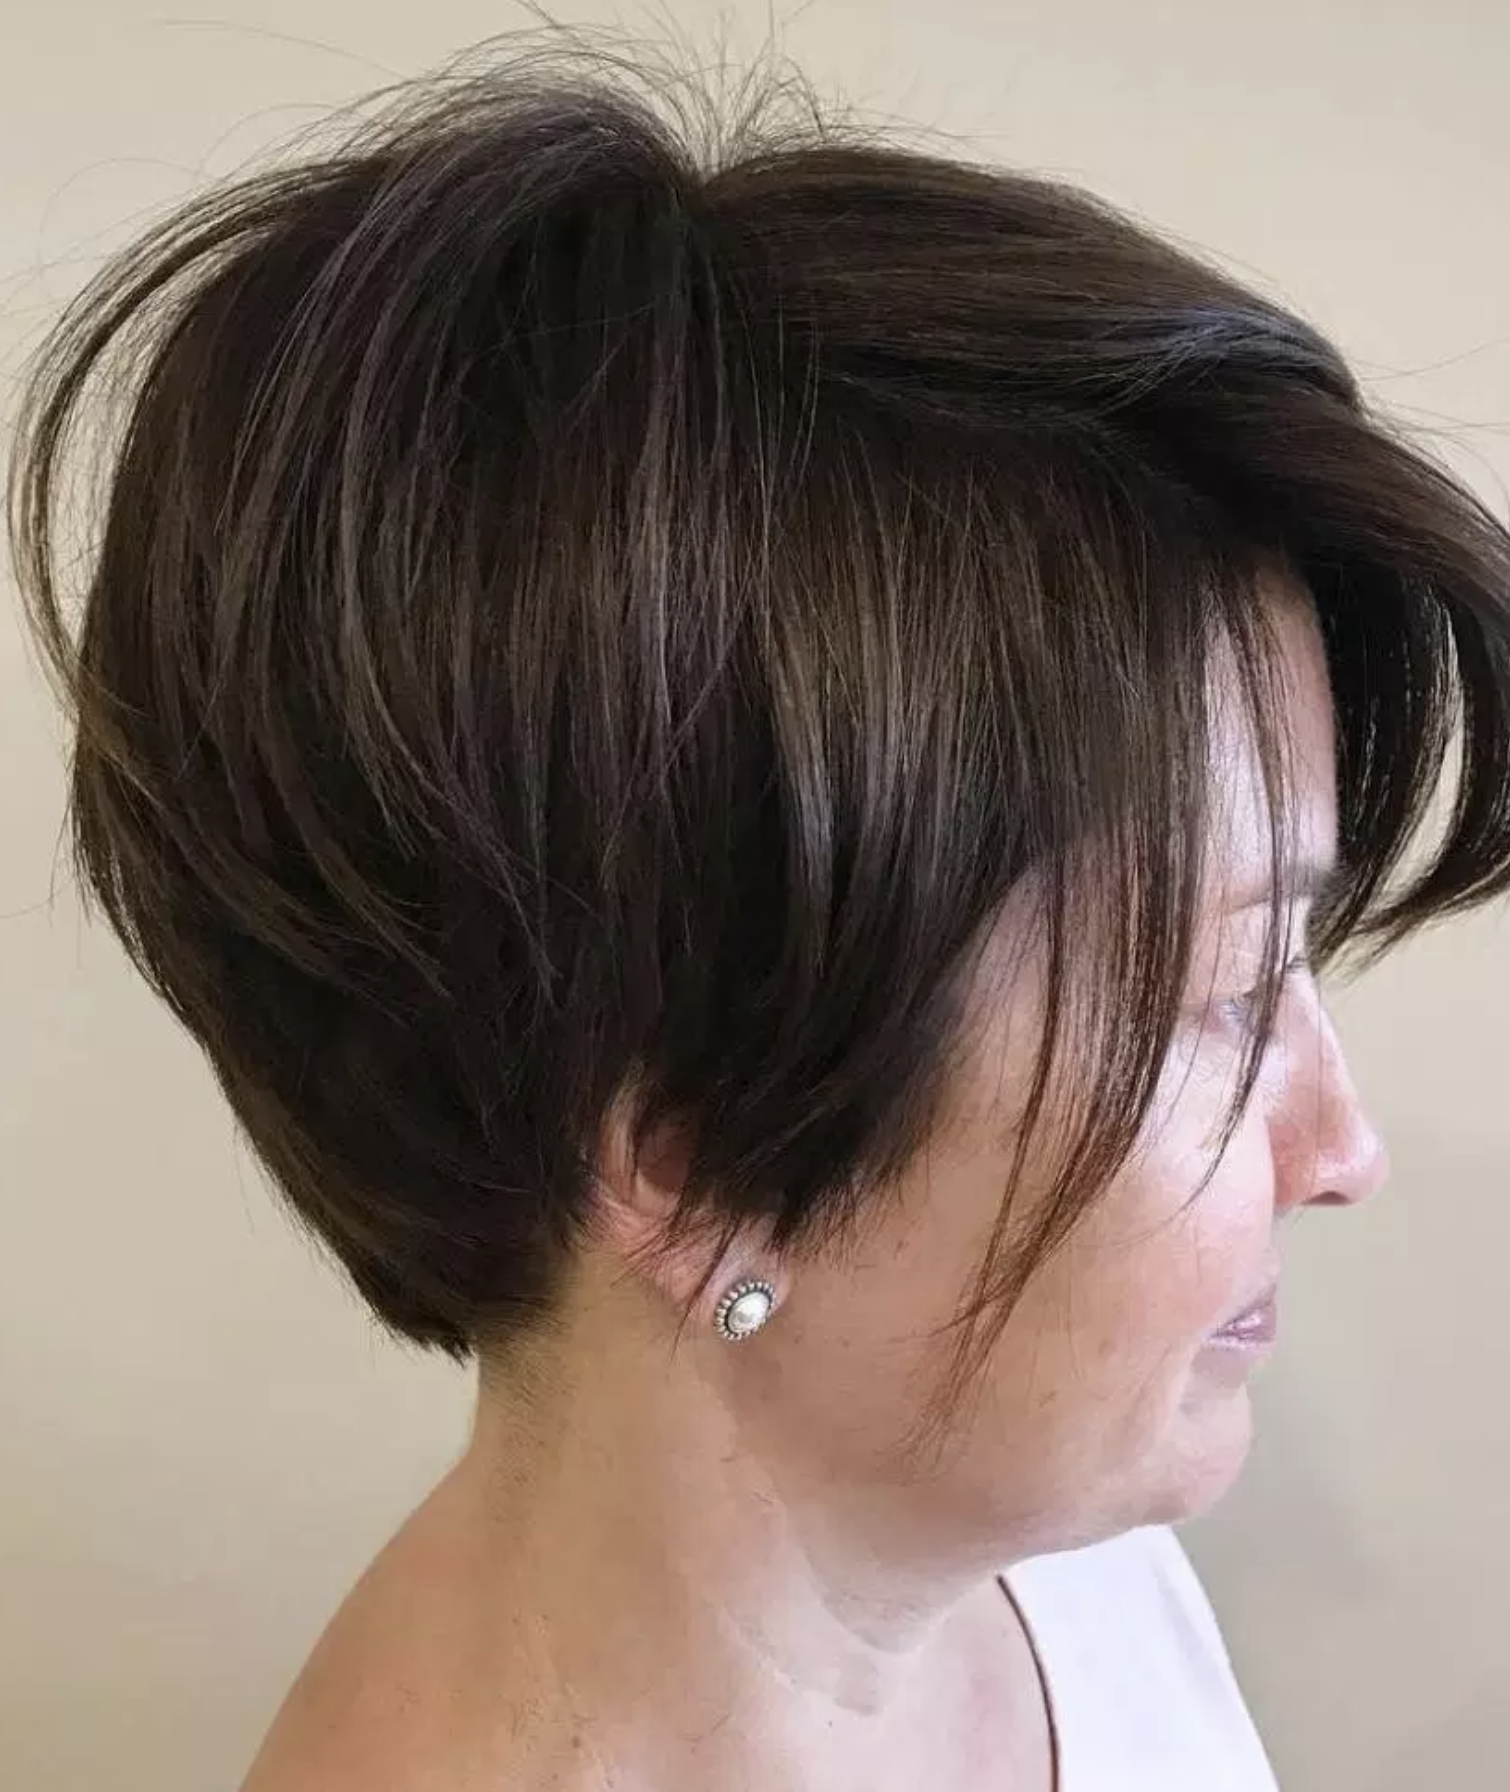 Short Hairstyles For Women Over 40 Many Women In Their 40s Opt For Short Haircuts On A Hunch And They Definit Short Hair Styles Womens Hairstyles Hair Styles